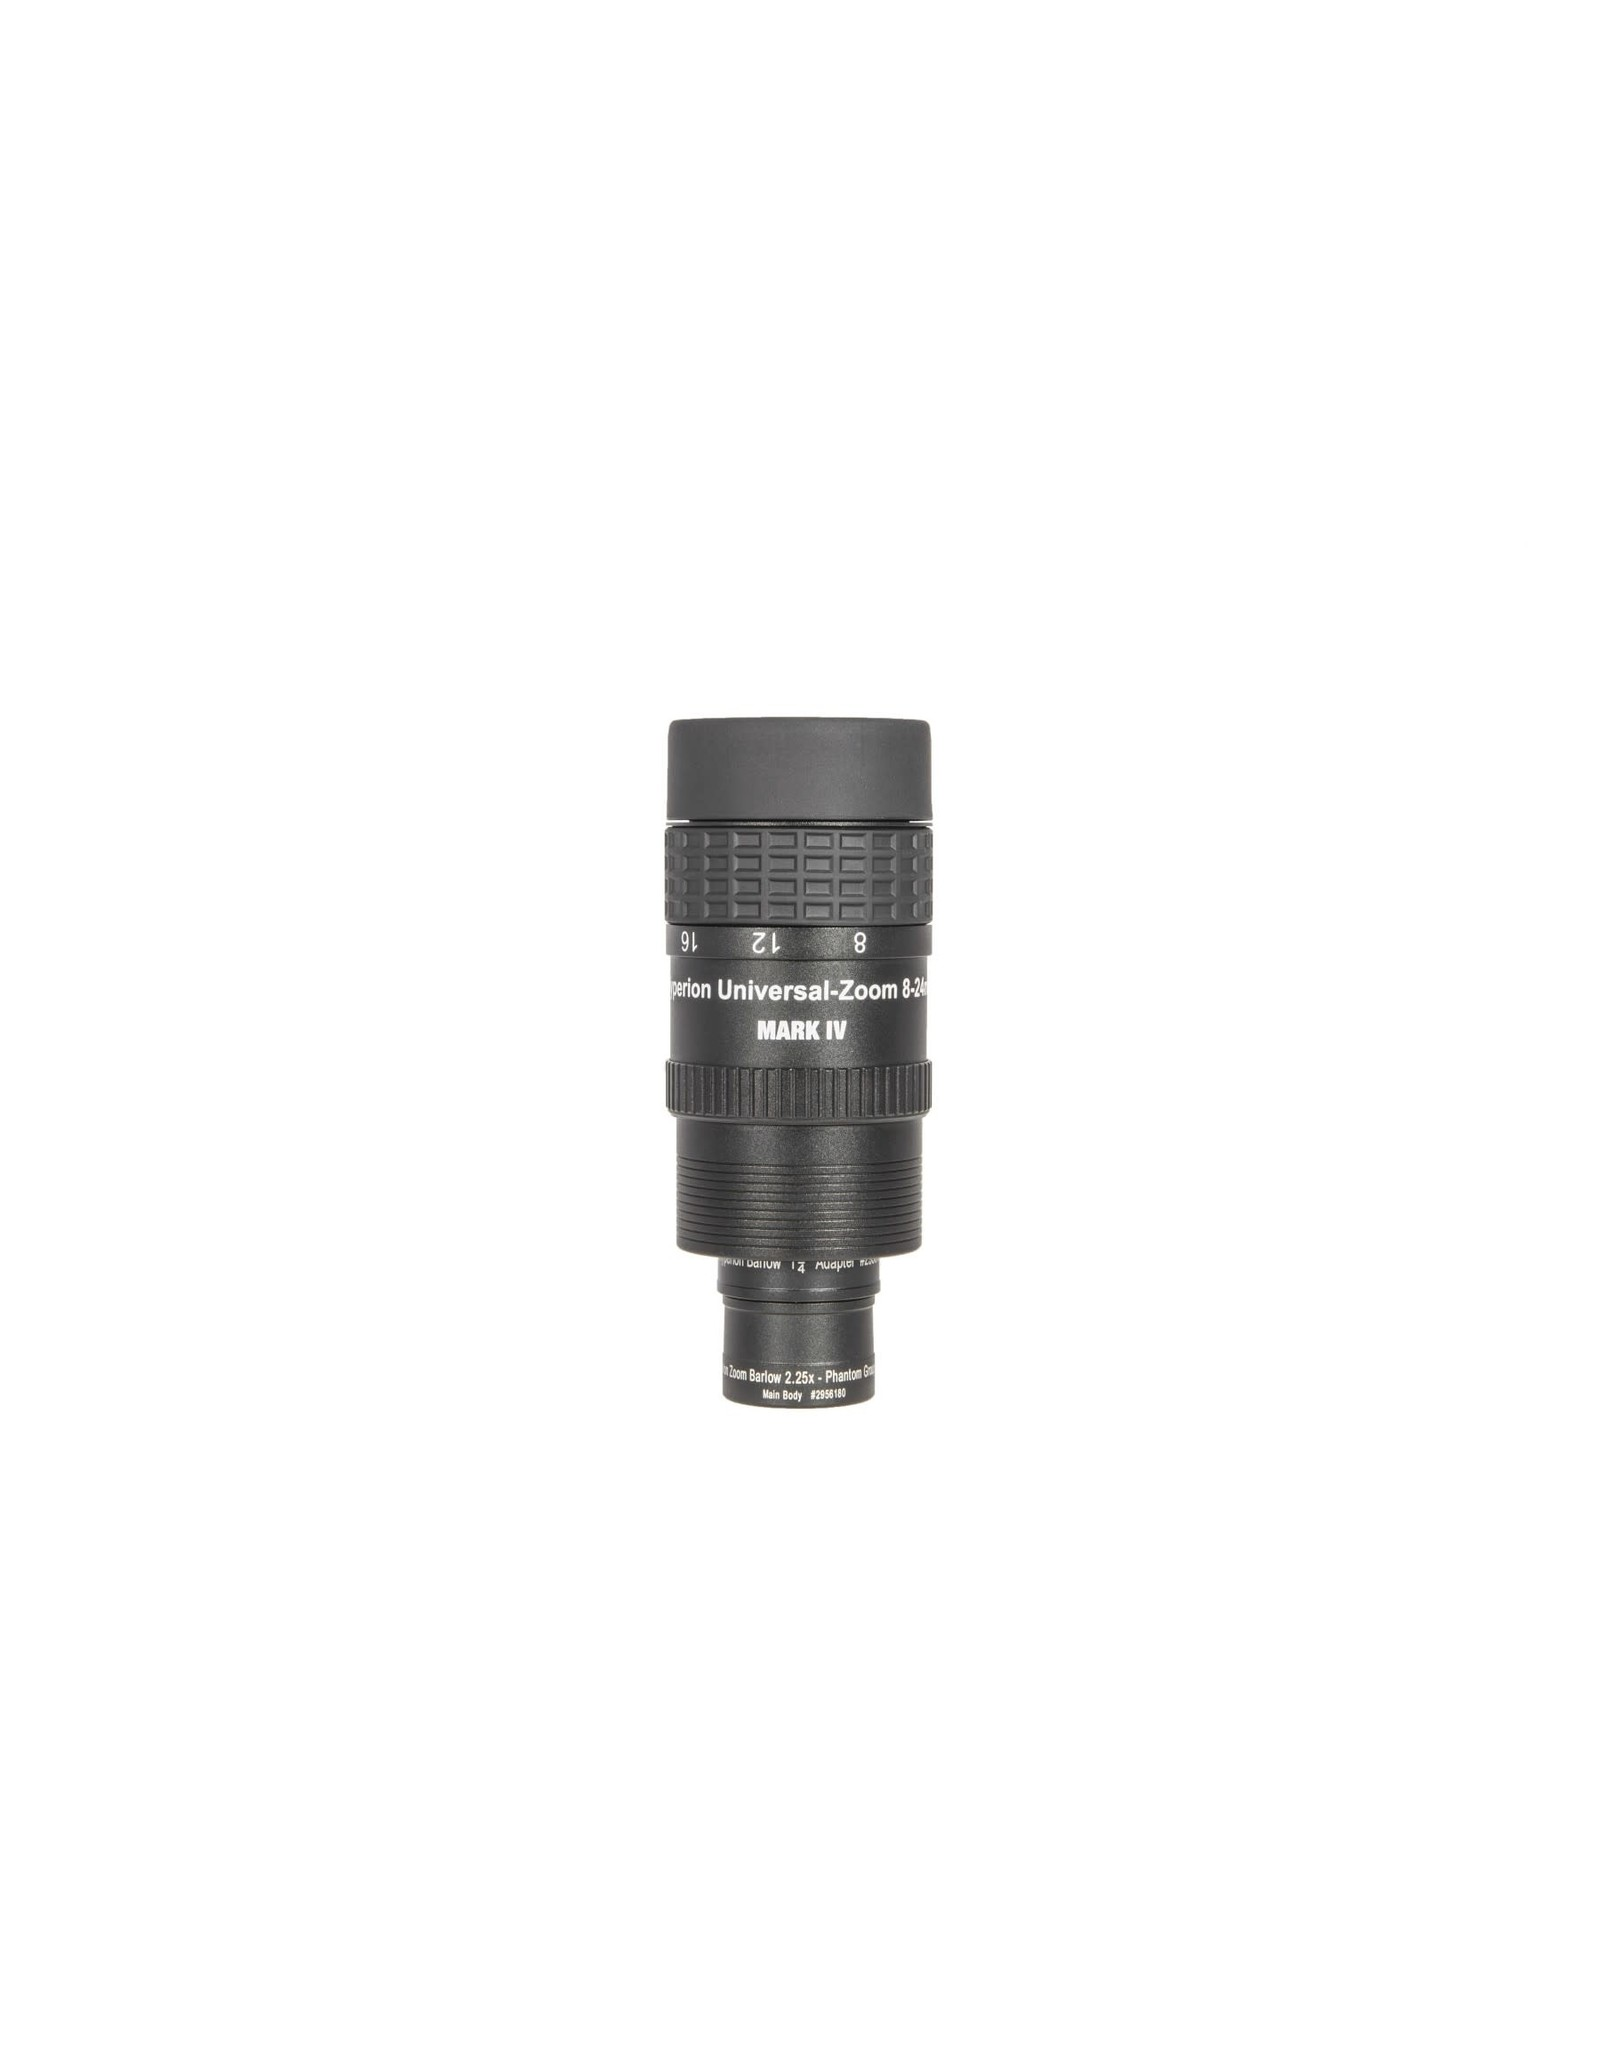 Baader Planetarium Baader Hyperion Universal Zoom Mark IV with Hyperion-Barlow 2.25x (8- (BUNDLE)24mm / 3.6-10.7mm)